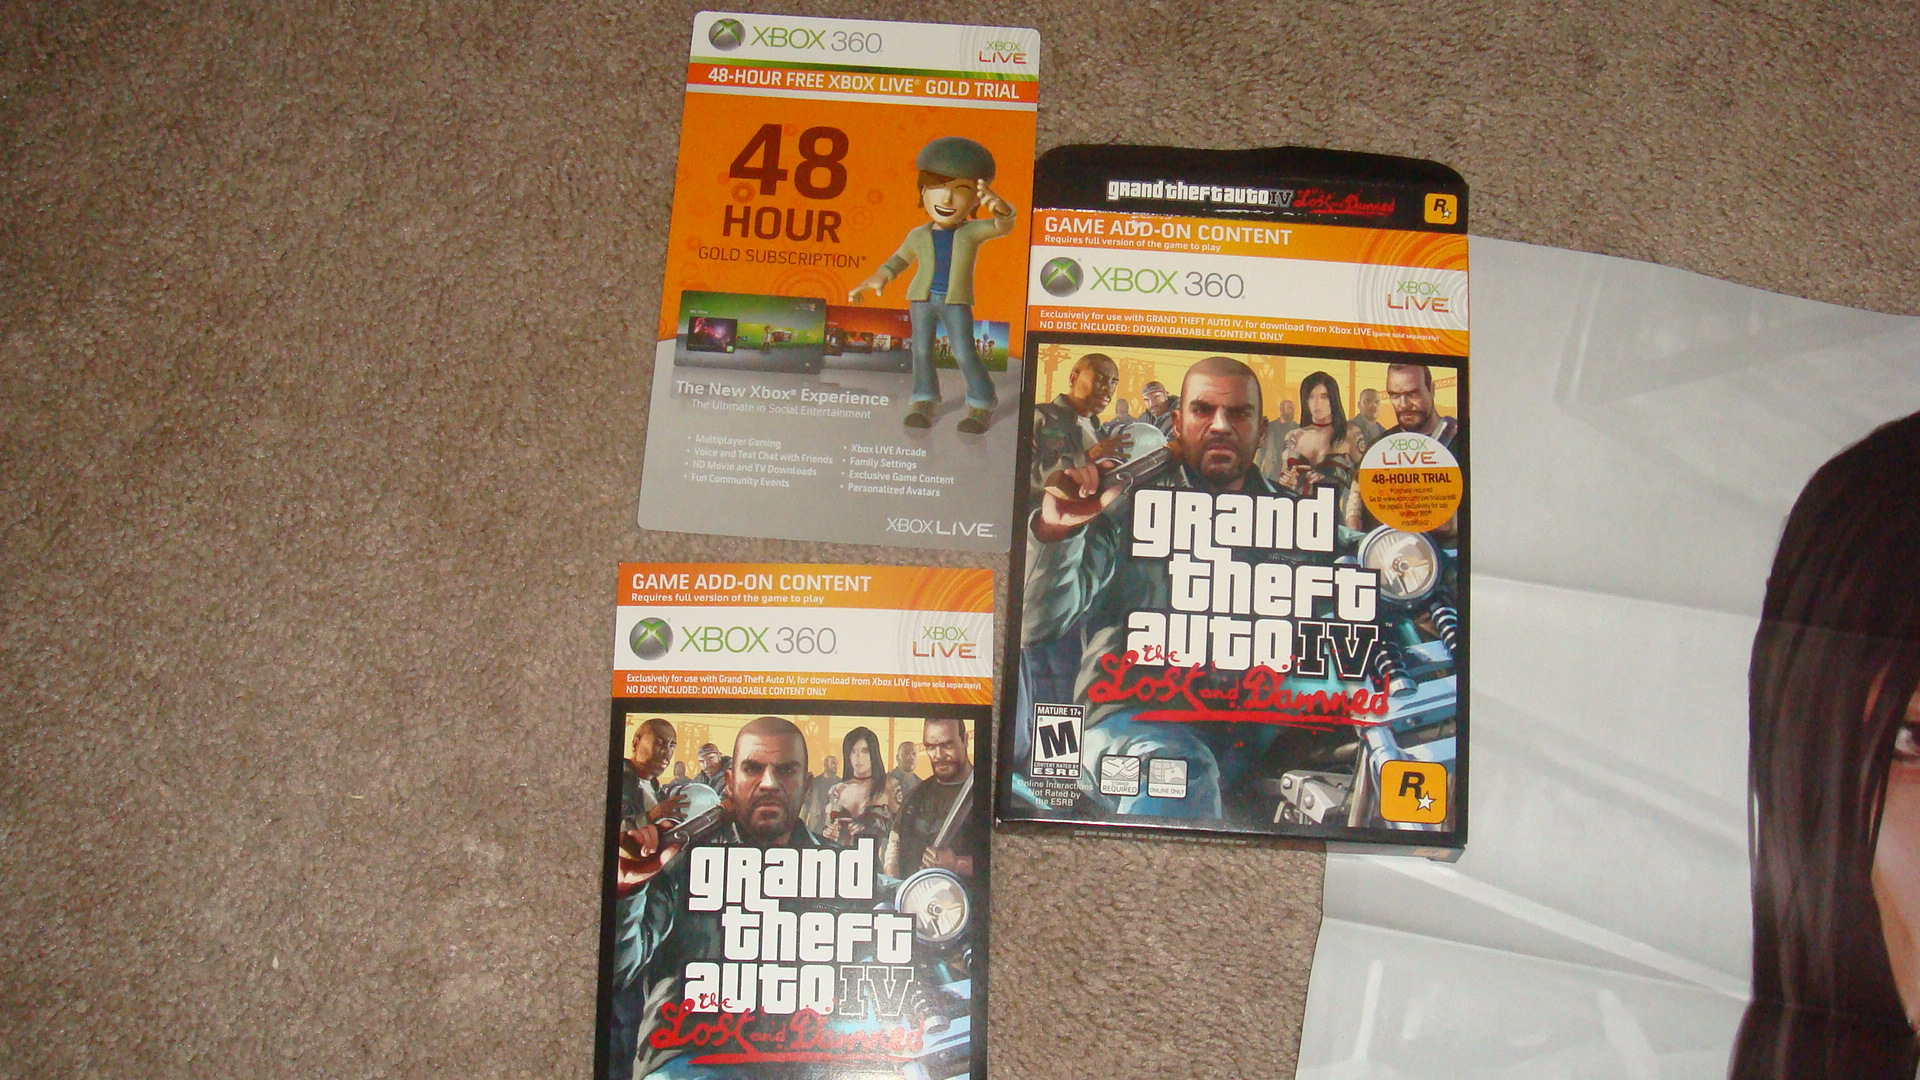 I JUST GOT GTA4:THE LOST & DAMNED! - Xbox America